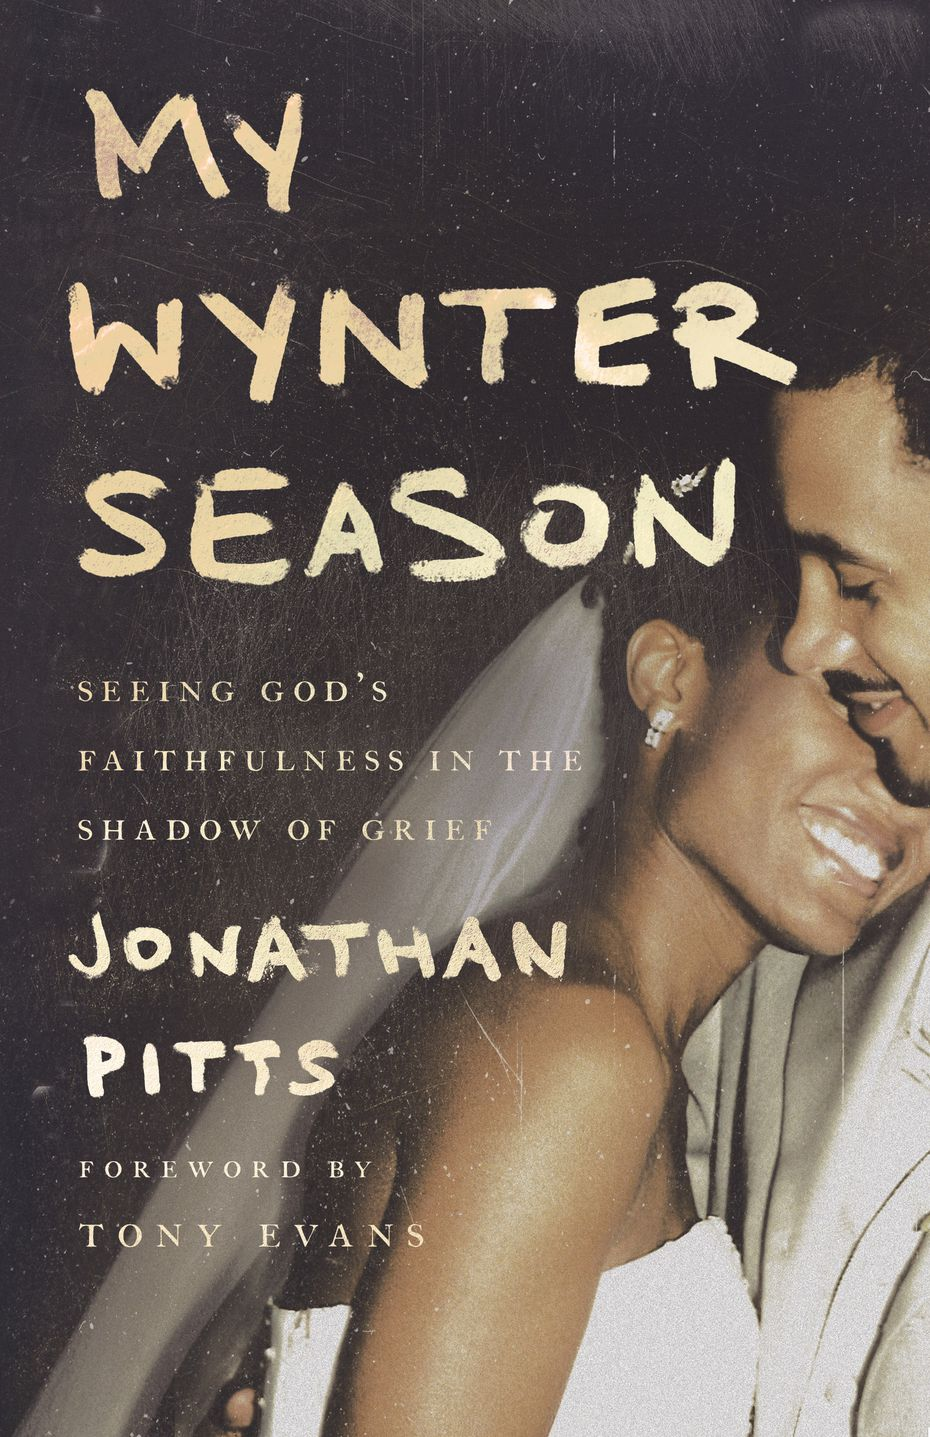 """In """"My Wynter Season,"""" author Jonathan Pitts reminds us there is beauty in finding hope, even in our most difficult times."""